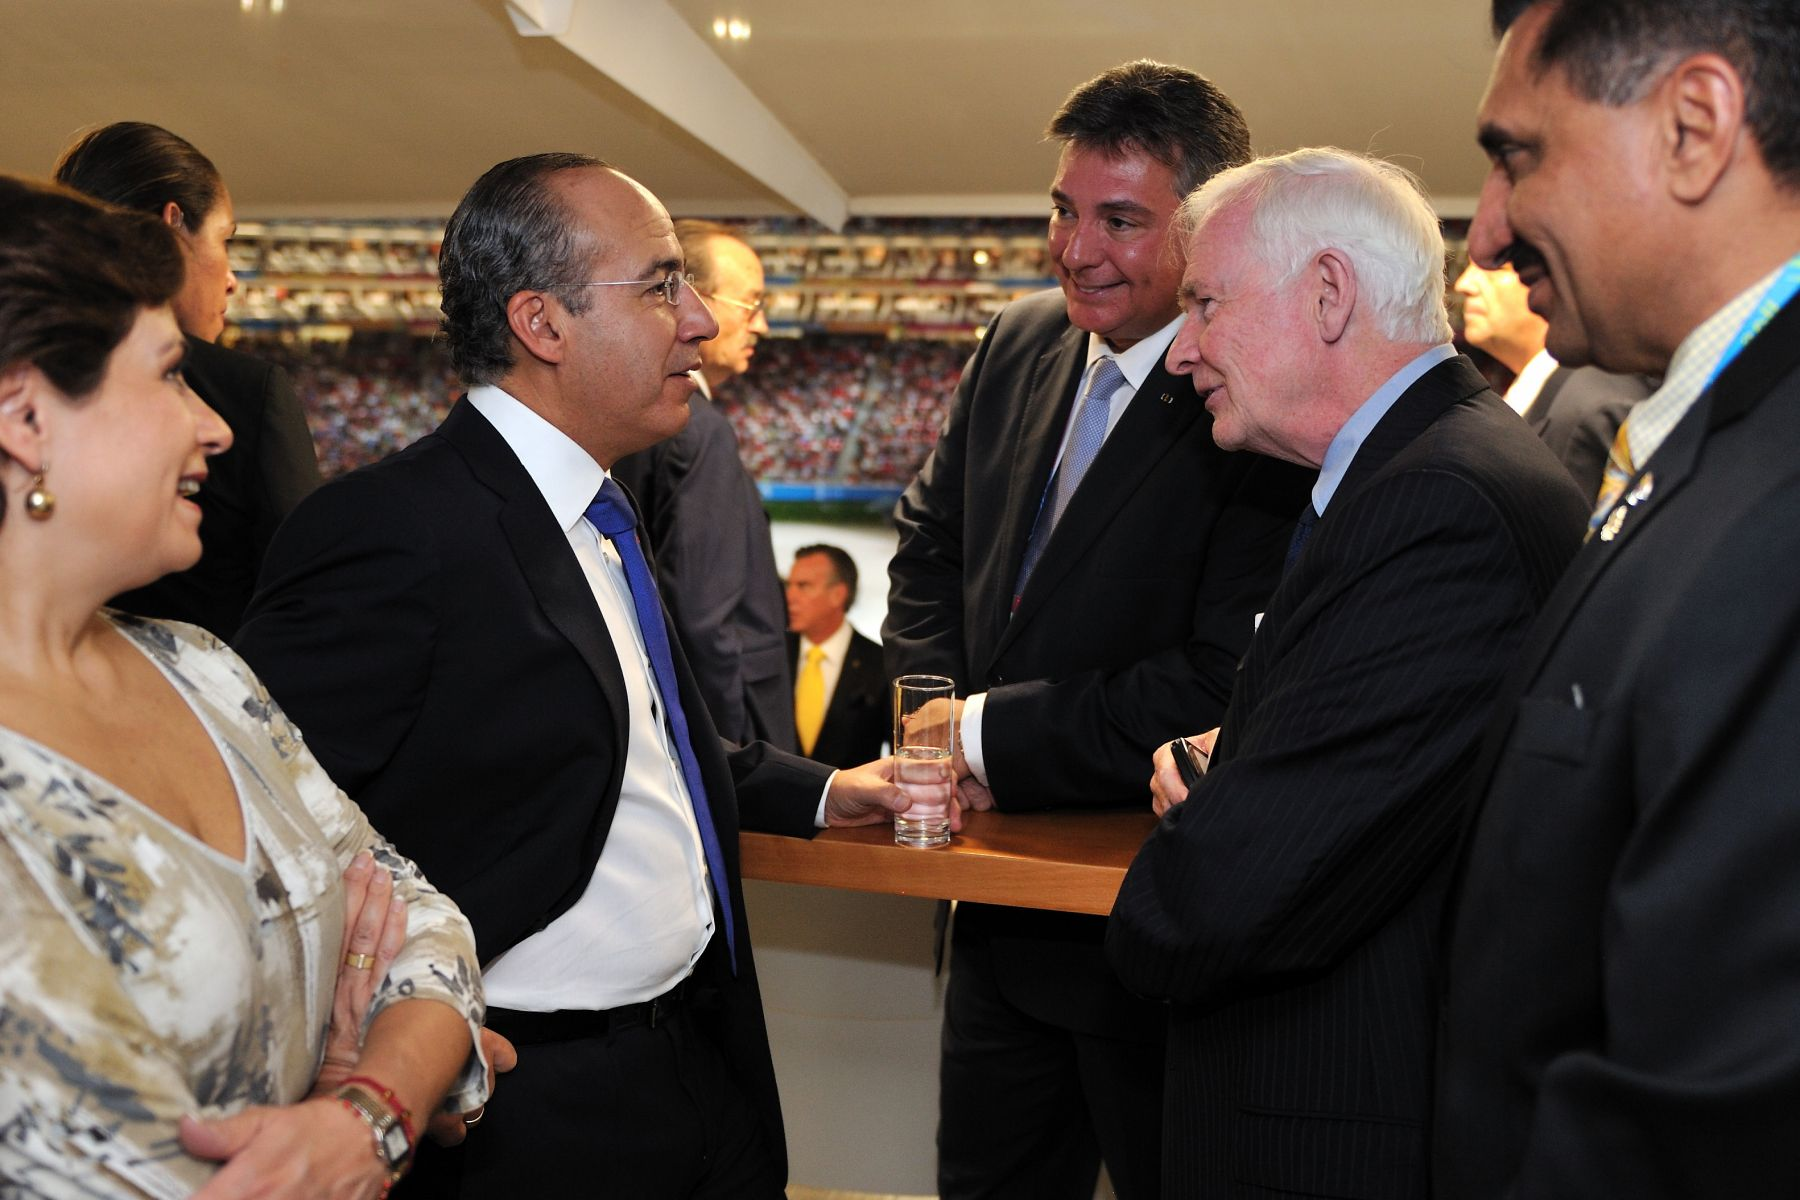 before the ceremony, he had the opportunity to meet with His Excellency Felipe Calderón Hinojosa, President of the United Mexican States (left).